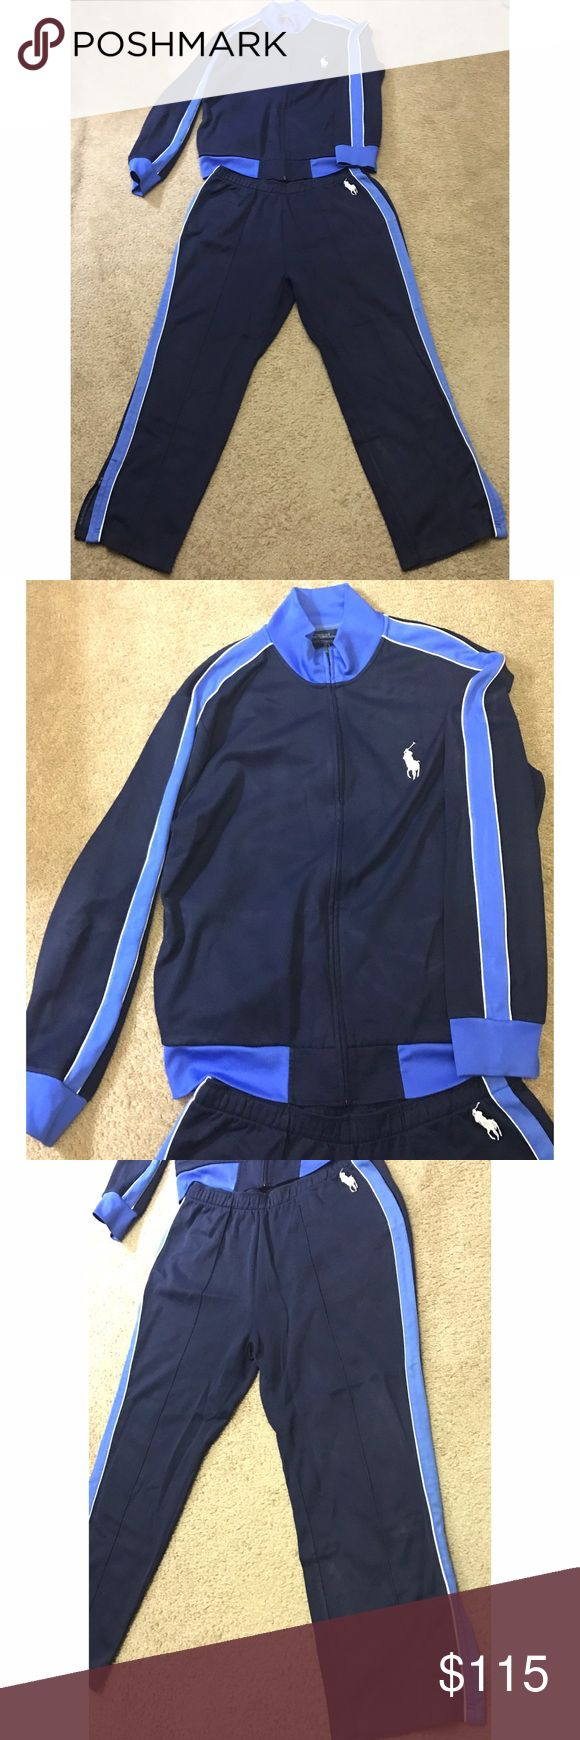 Polo tracksuit Navy blue and cobalt blue. Jacket and pants are a size XL. Worn only twice, excellent condition. Polo by Ralph Lauren Pants Sweatpants & Joggers